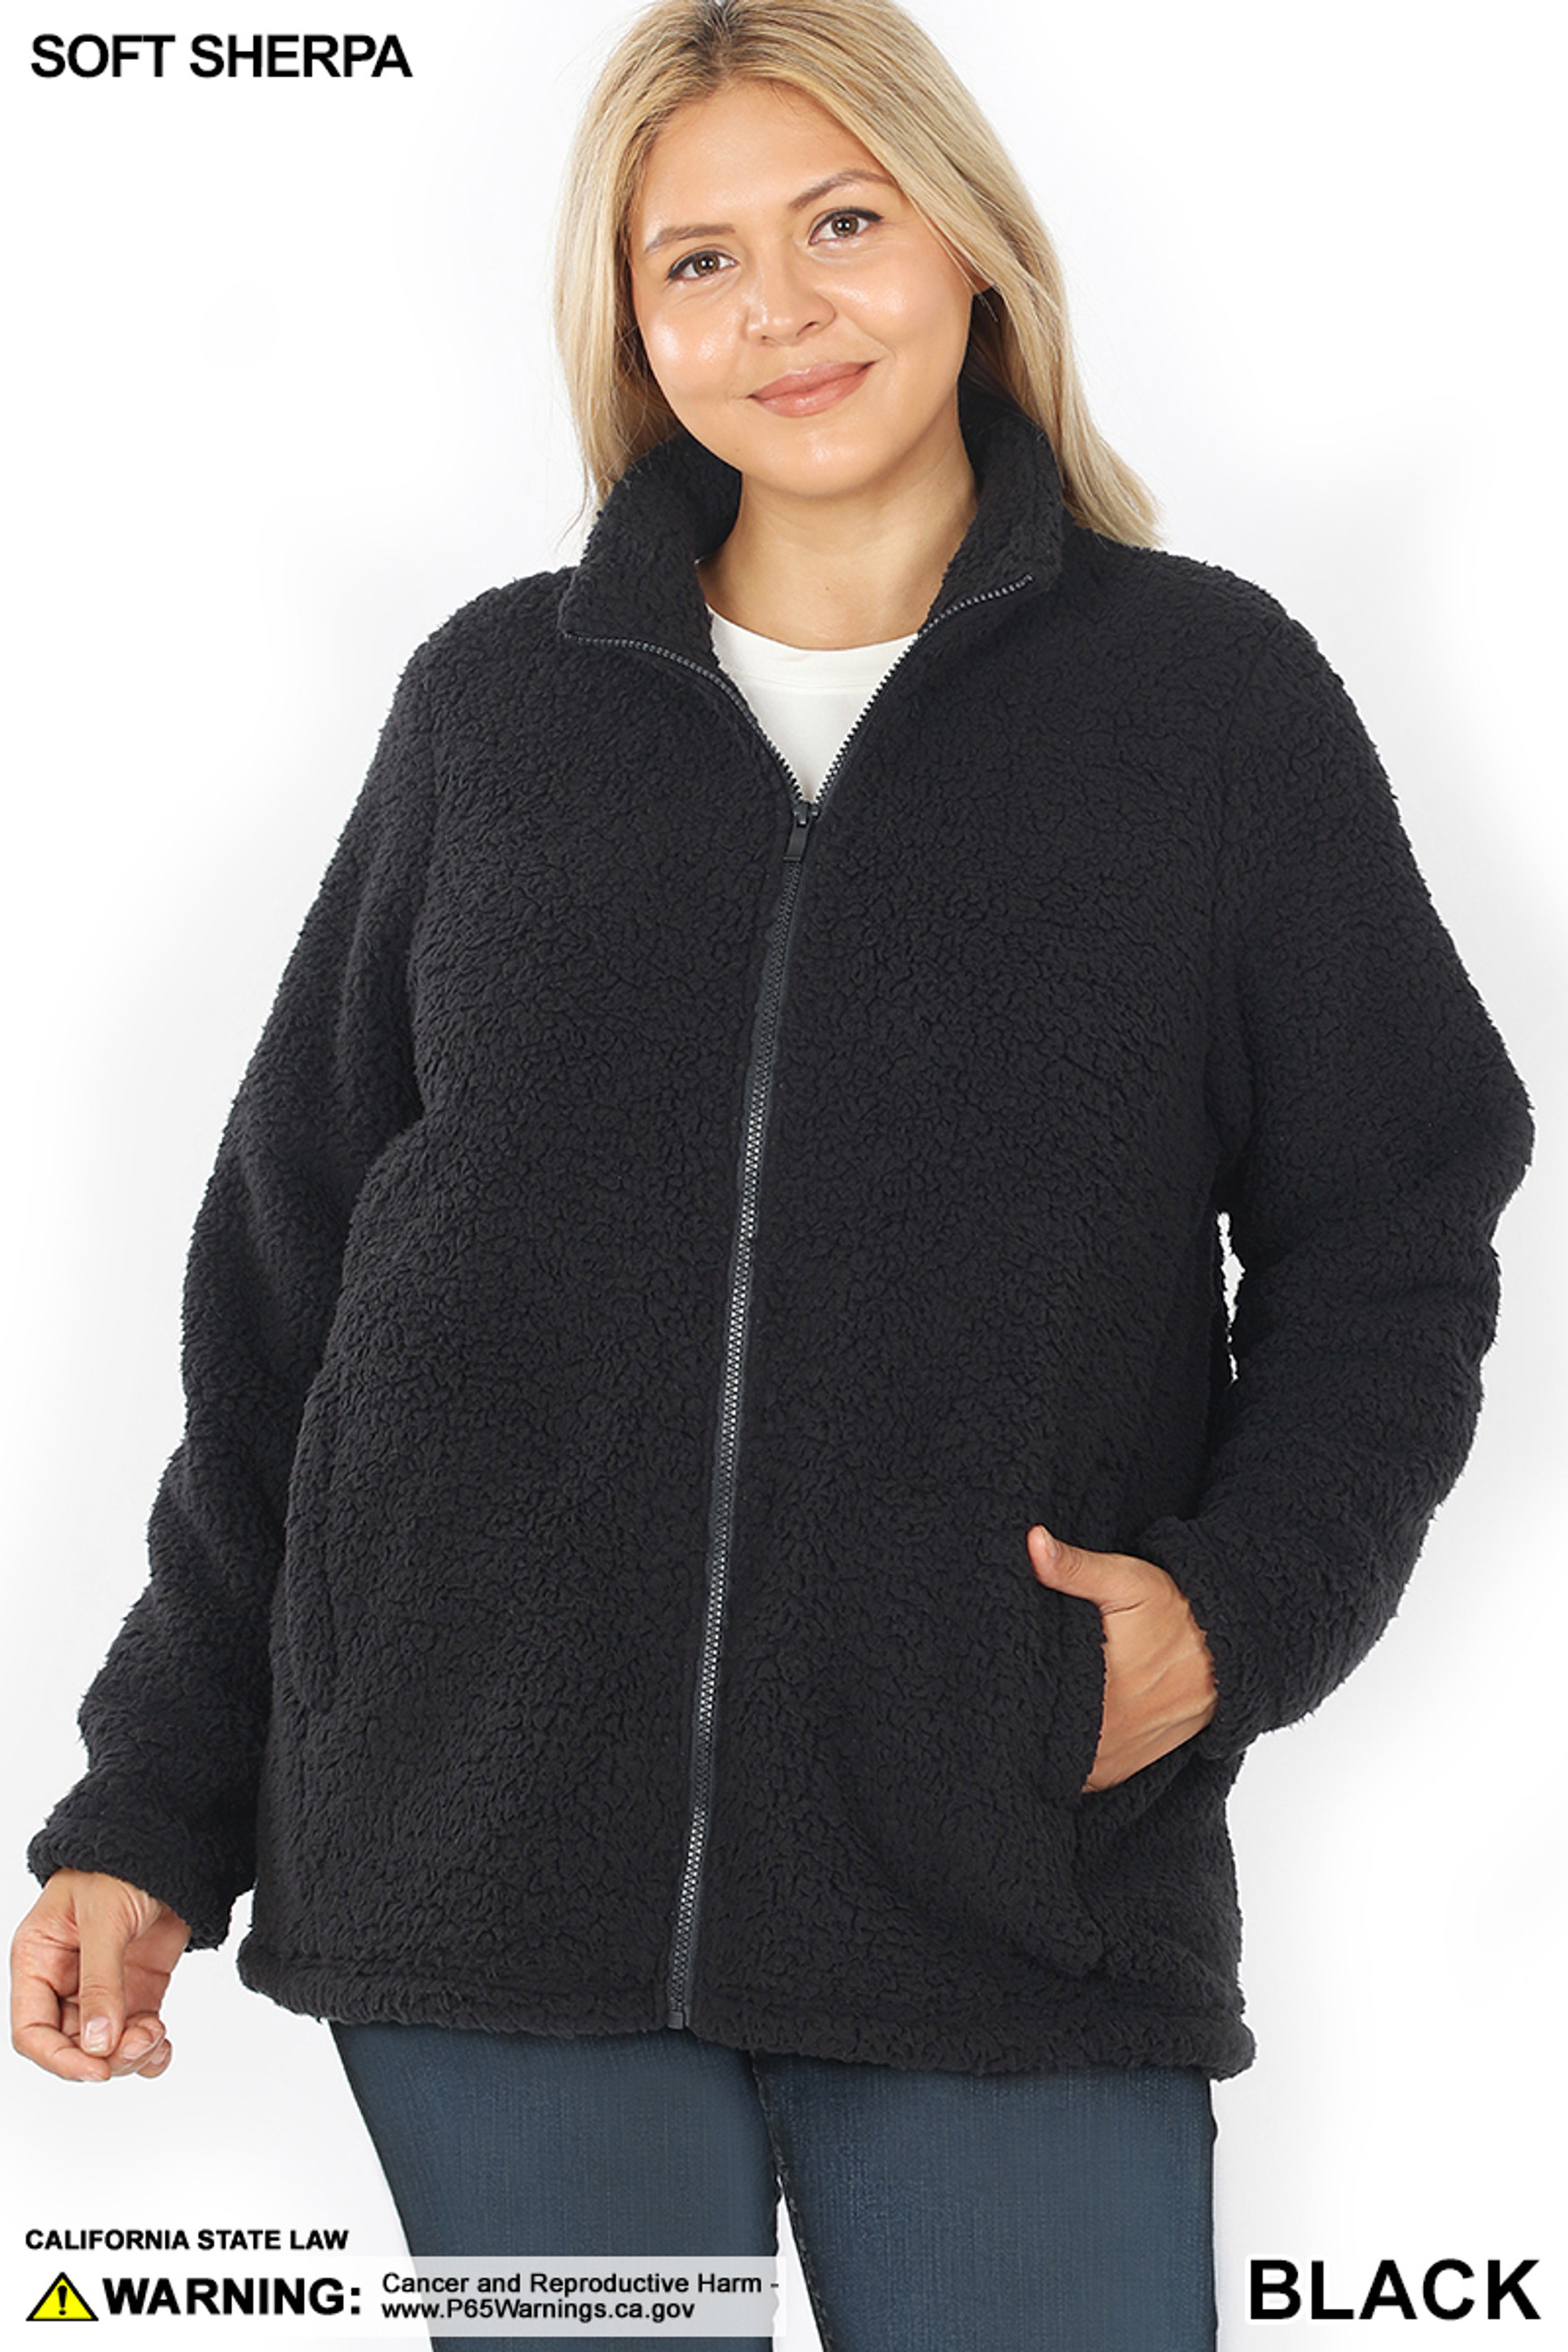 Front image of Black Sherpa Zip Up Plus Size Jacket with Side Pockets